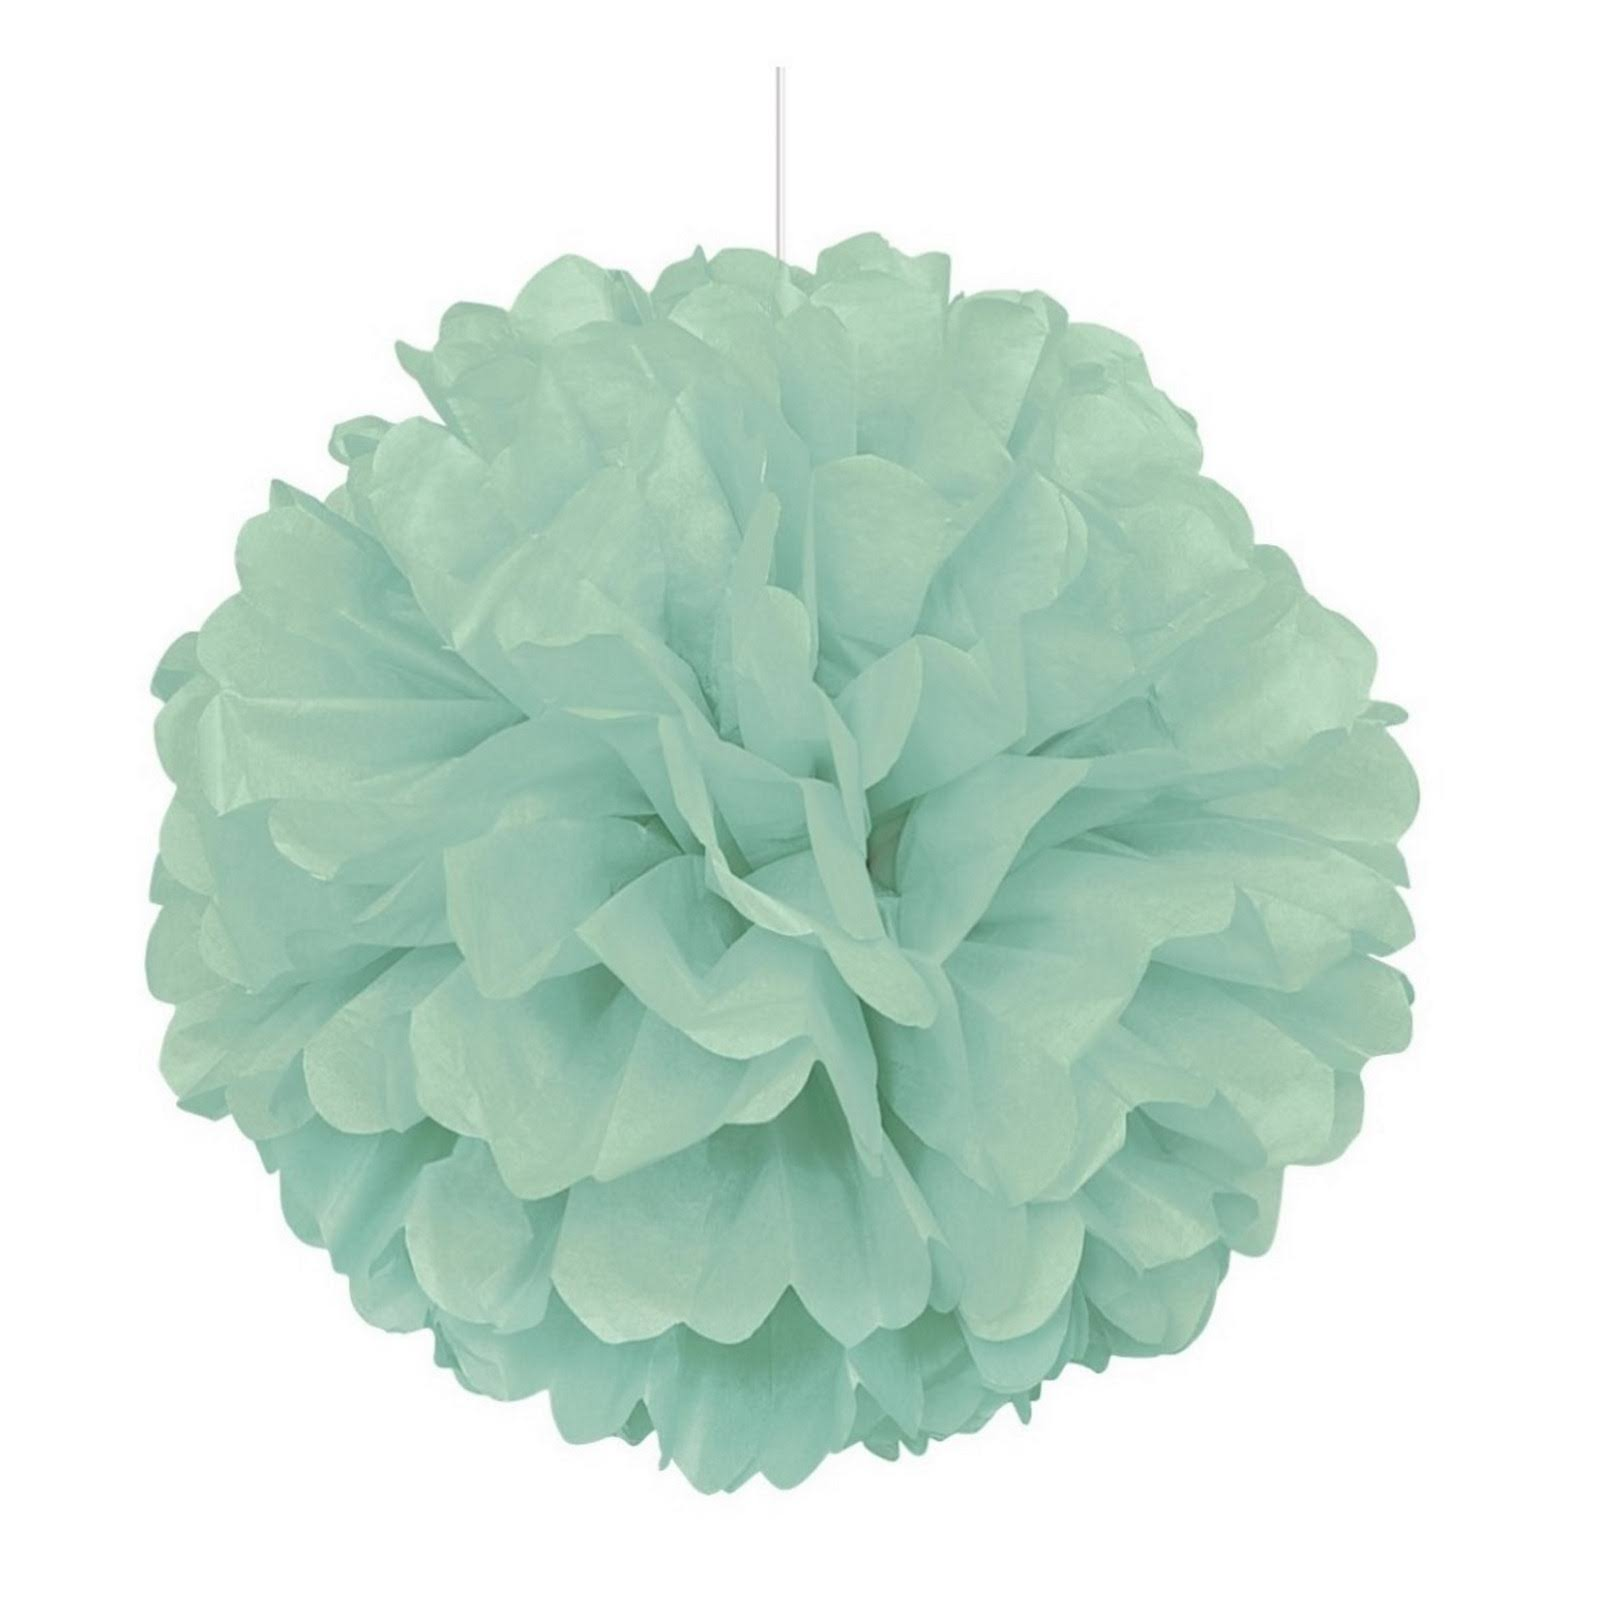 Unique Industries Tissue Paper Pom Pom - Mint Green, 16""